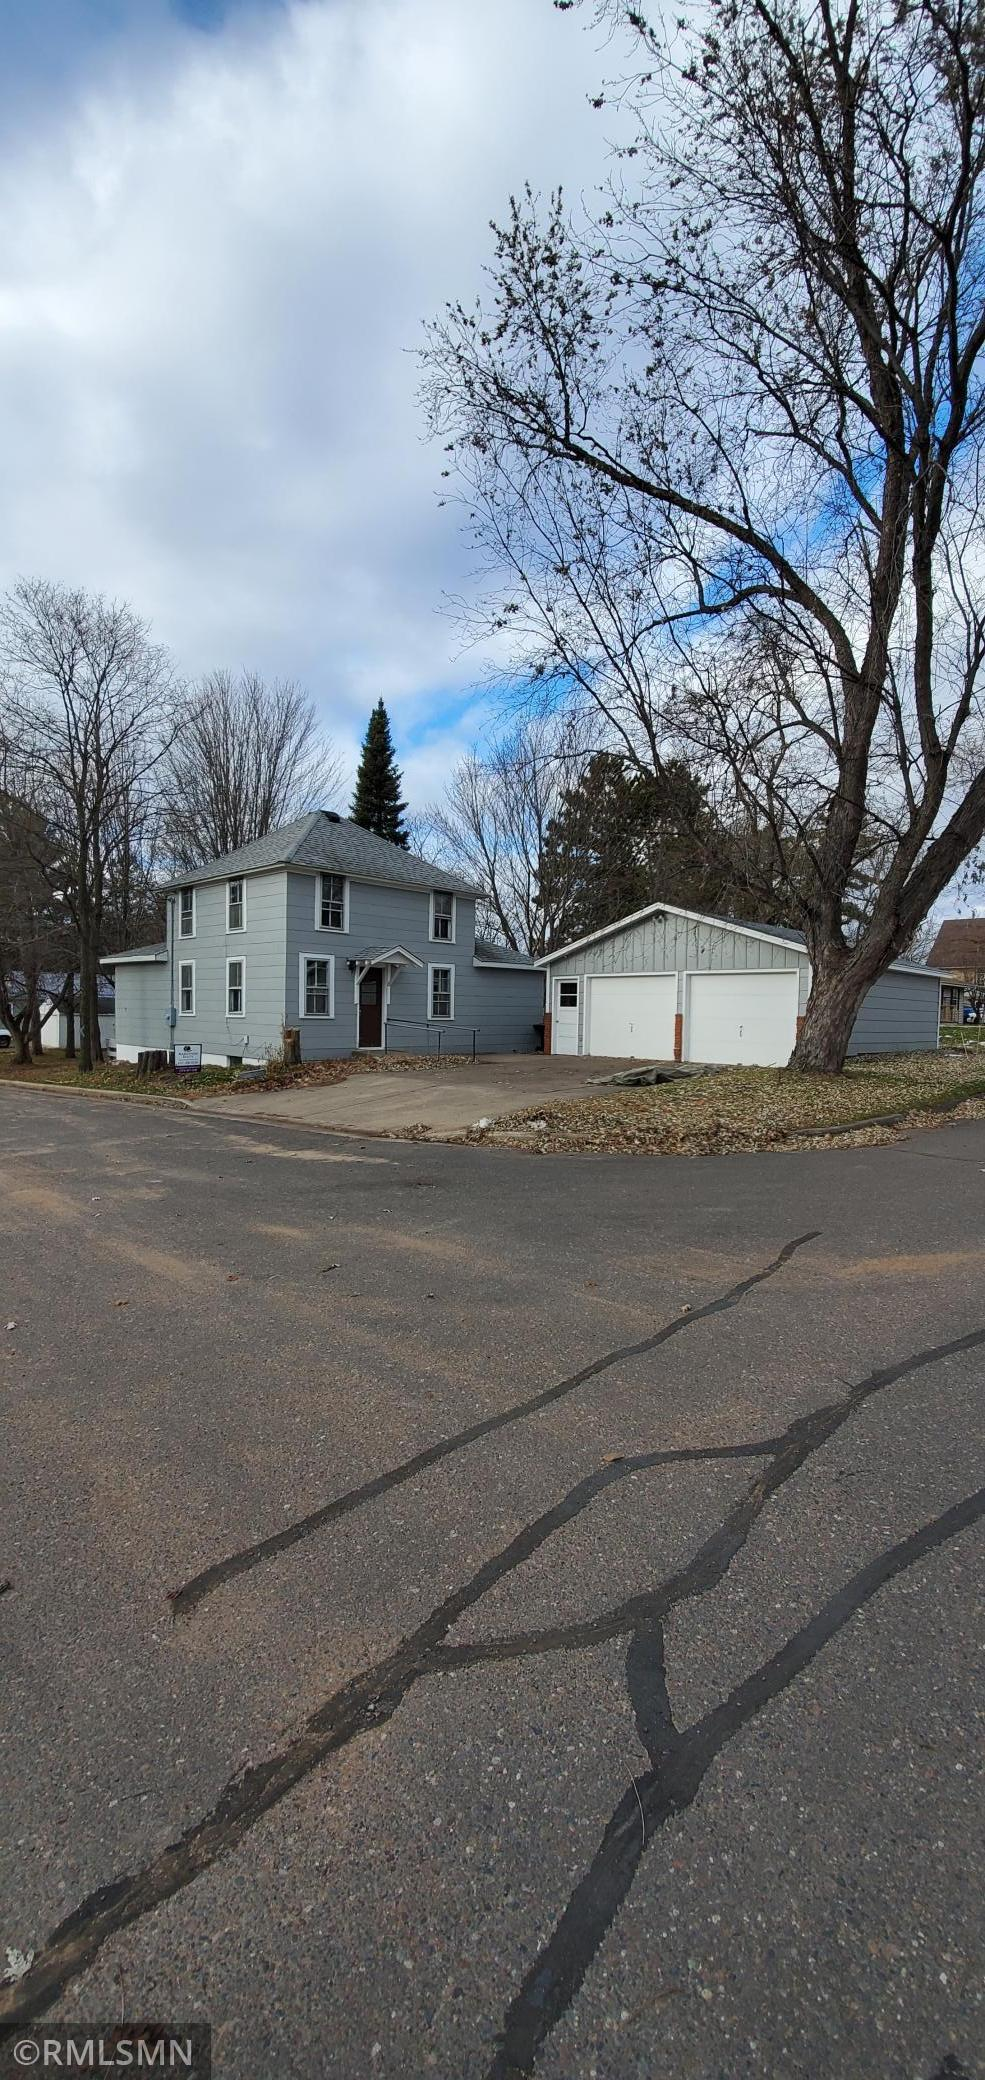 213 Pearl Street Property Photo - Balsam Lake, WI real estate listing